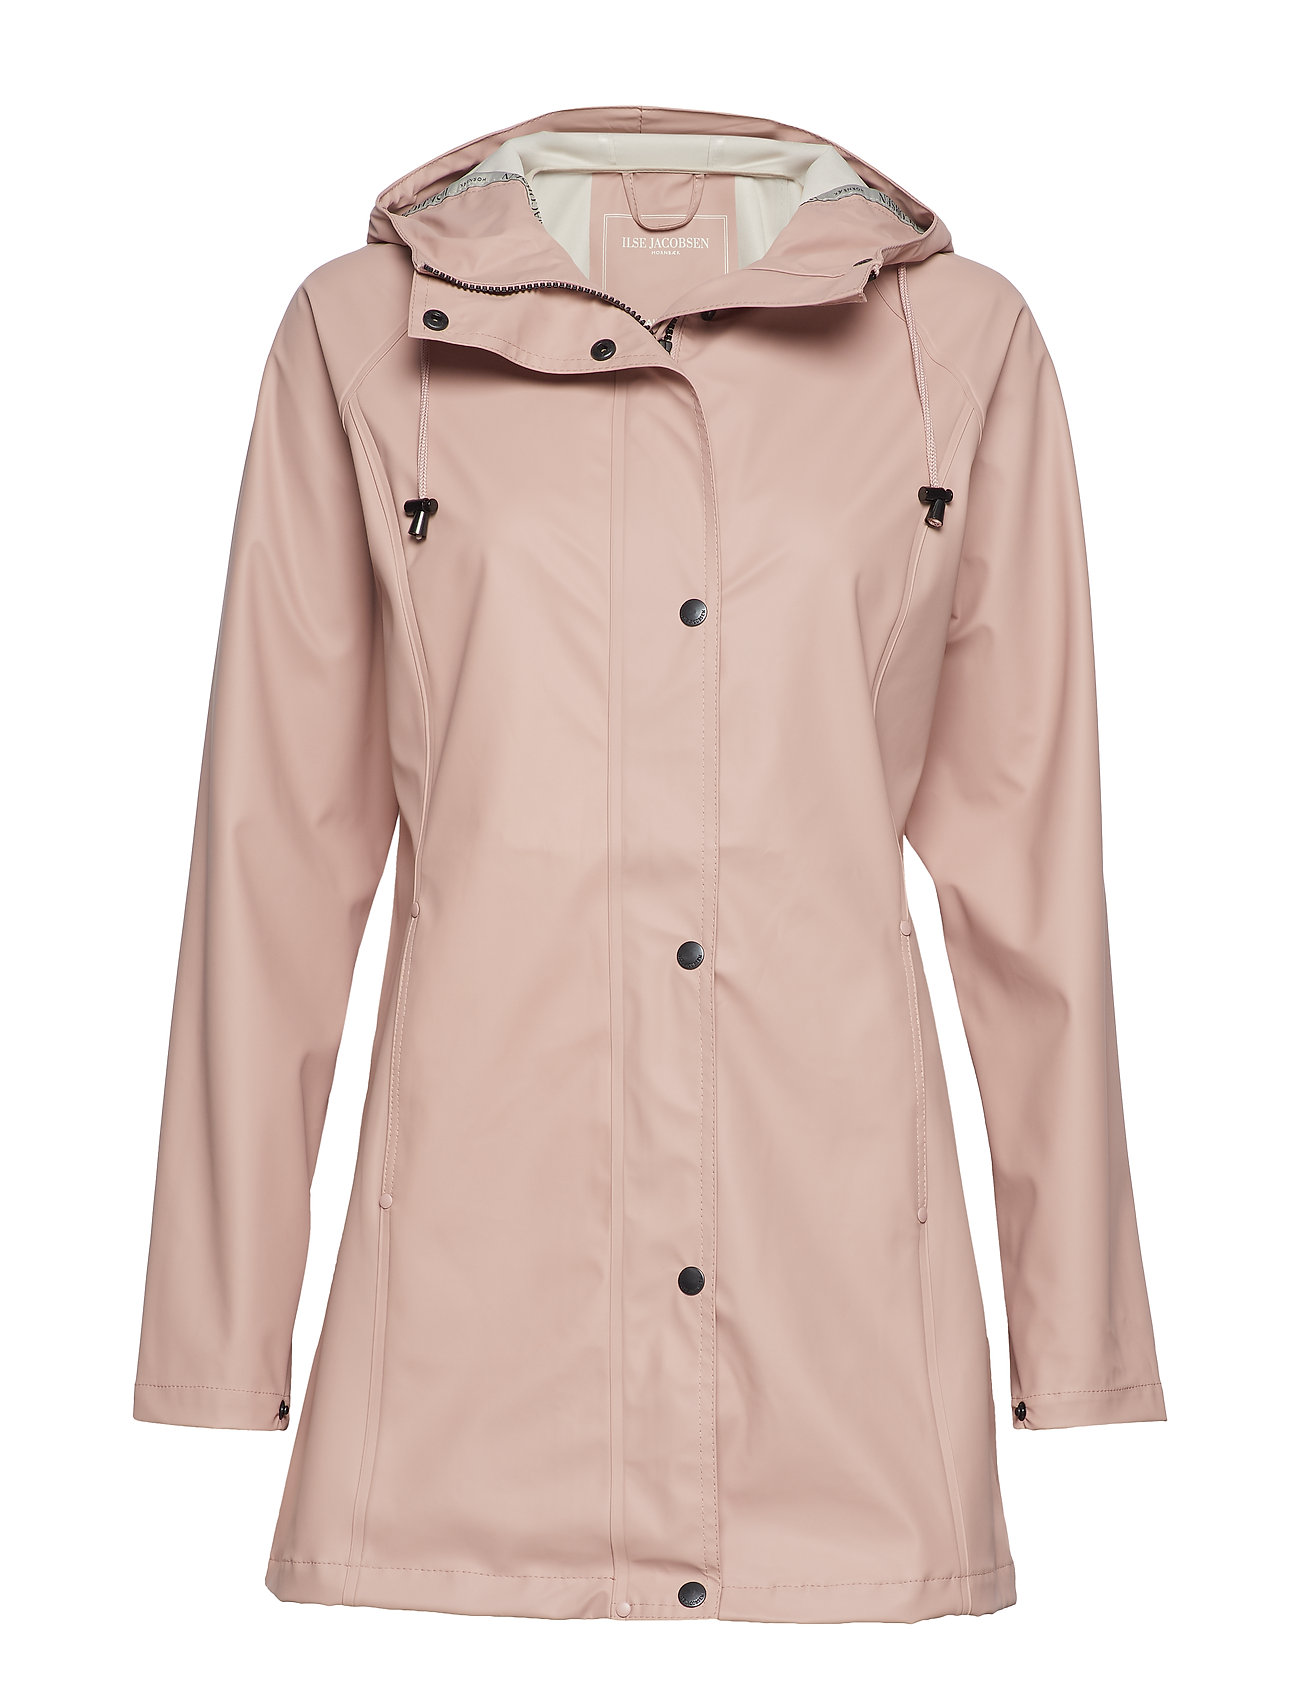 Ilse Jacobsen RAINCOAT - ADOBE ROSE